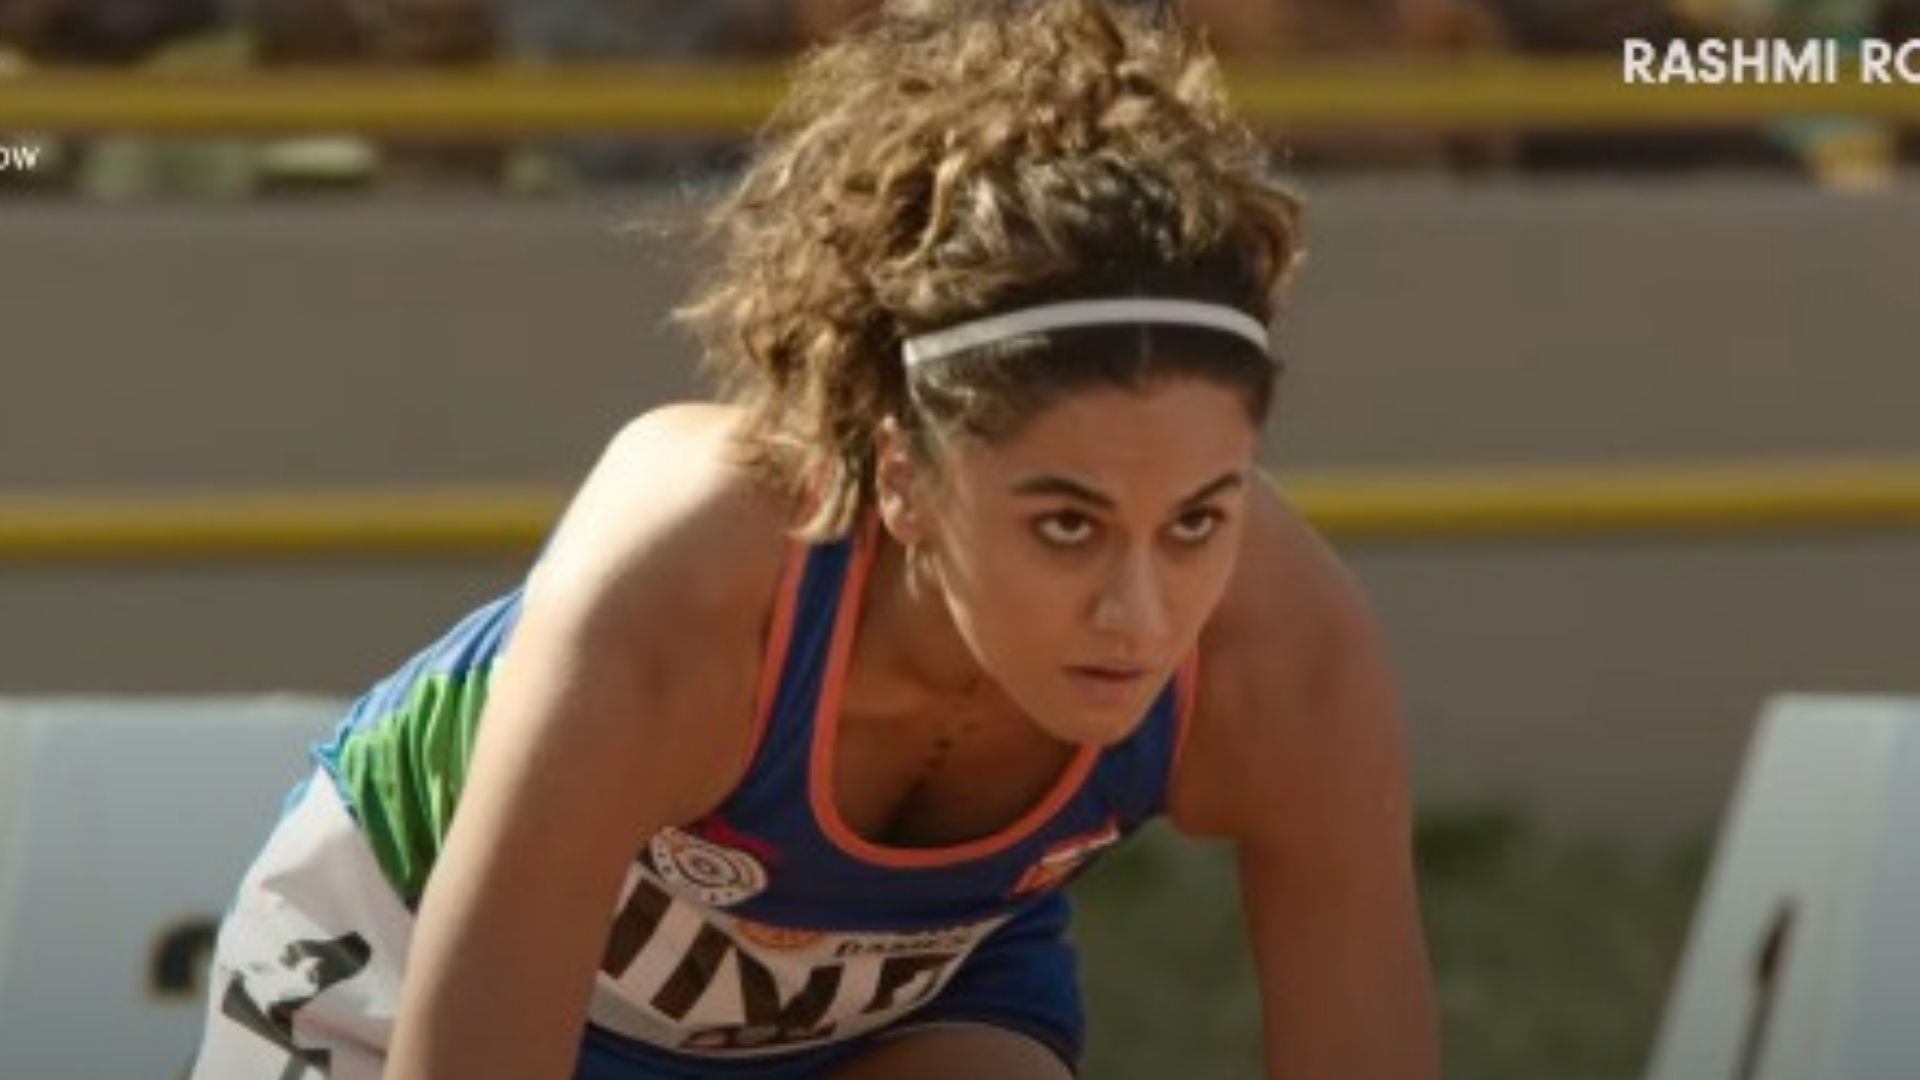 Rashmi Rocket Trailer: Taapsee Pannu Will Give You Goosebumps Her Brilliant Performance; The Twist In Story Will Leave You Inspired